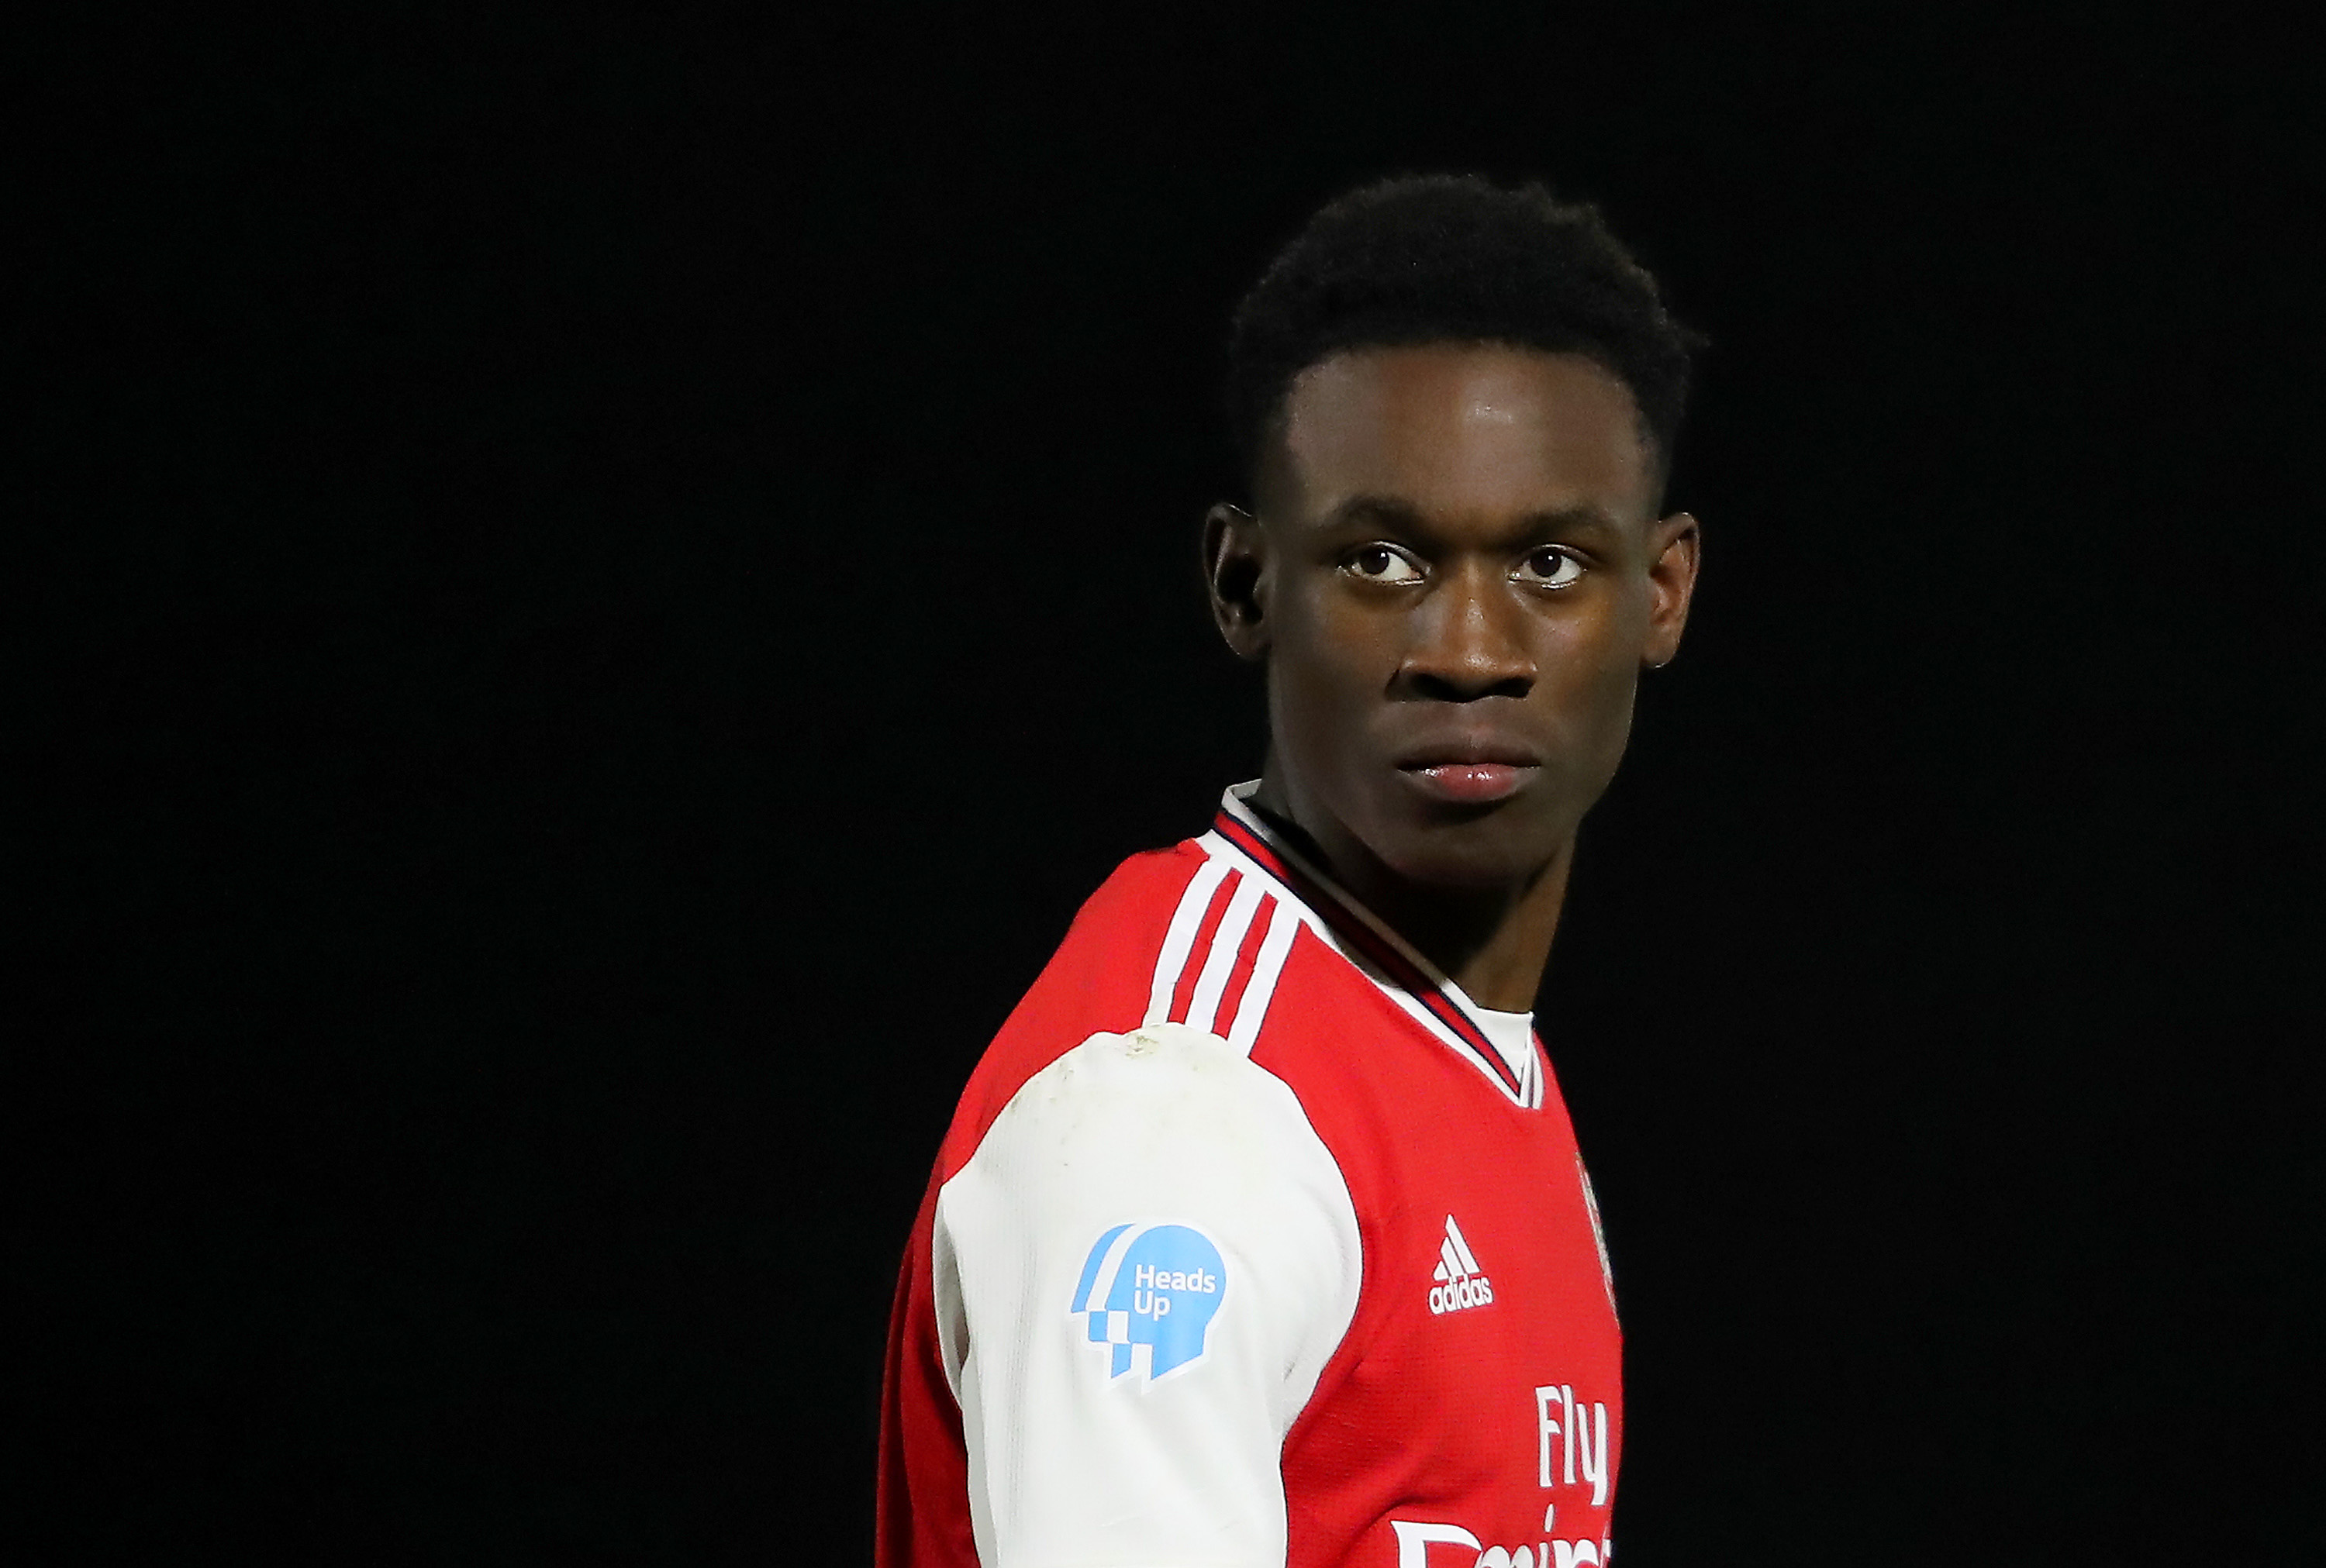 Arsenal have slapped an£8 million price-tag for Folarin Balogun - One for the future?